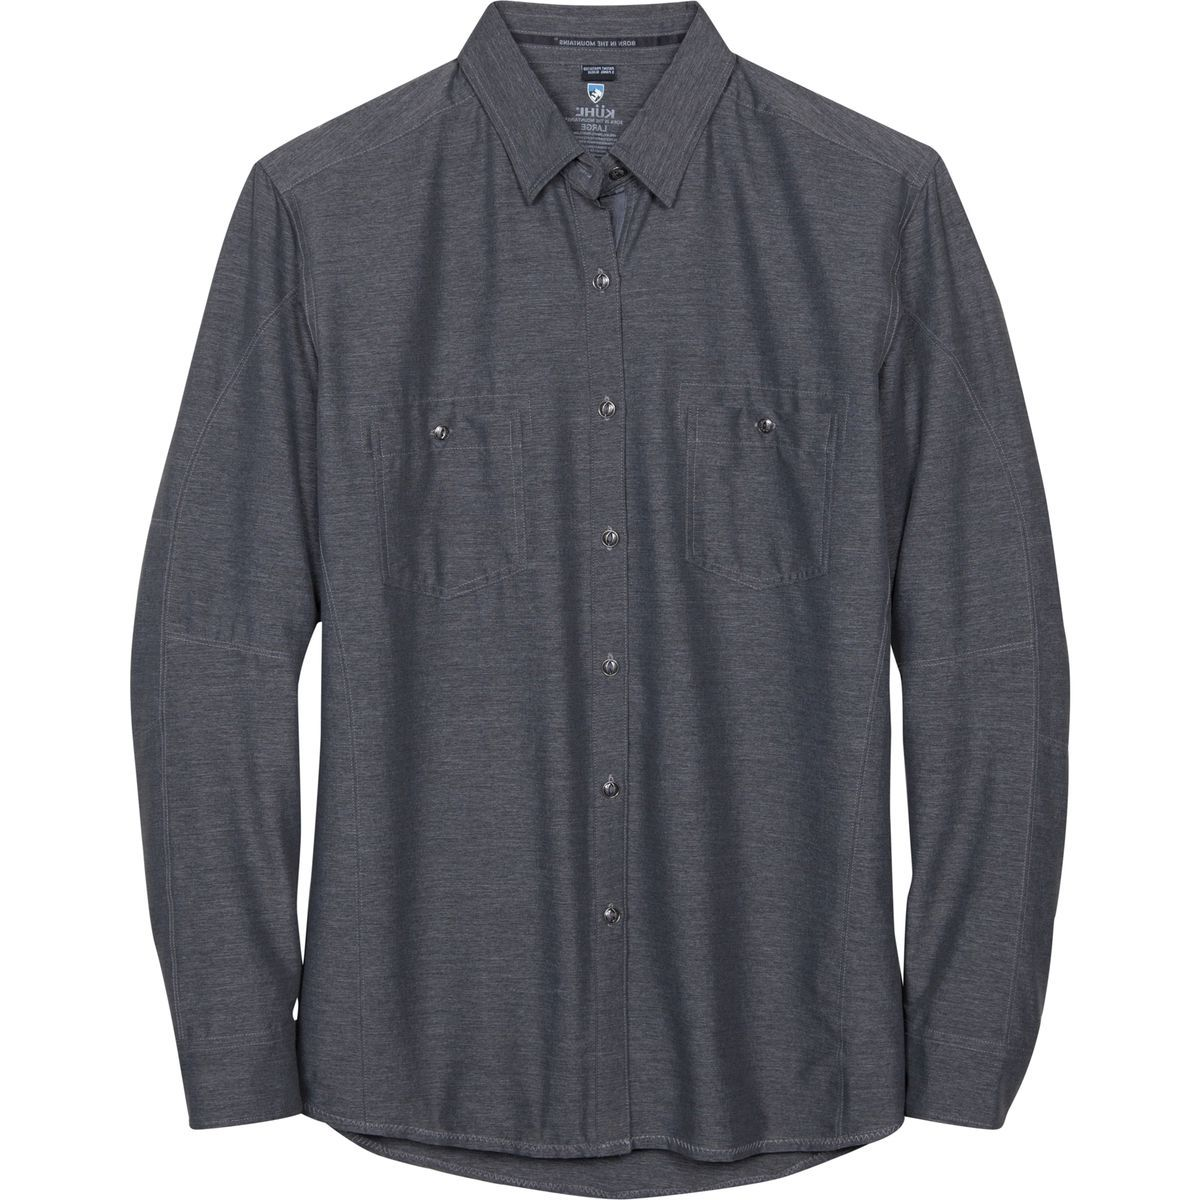 KUHL Reklaimr Shirt - Men's